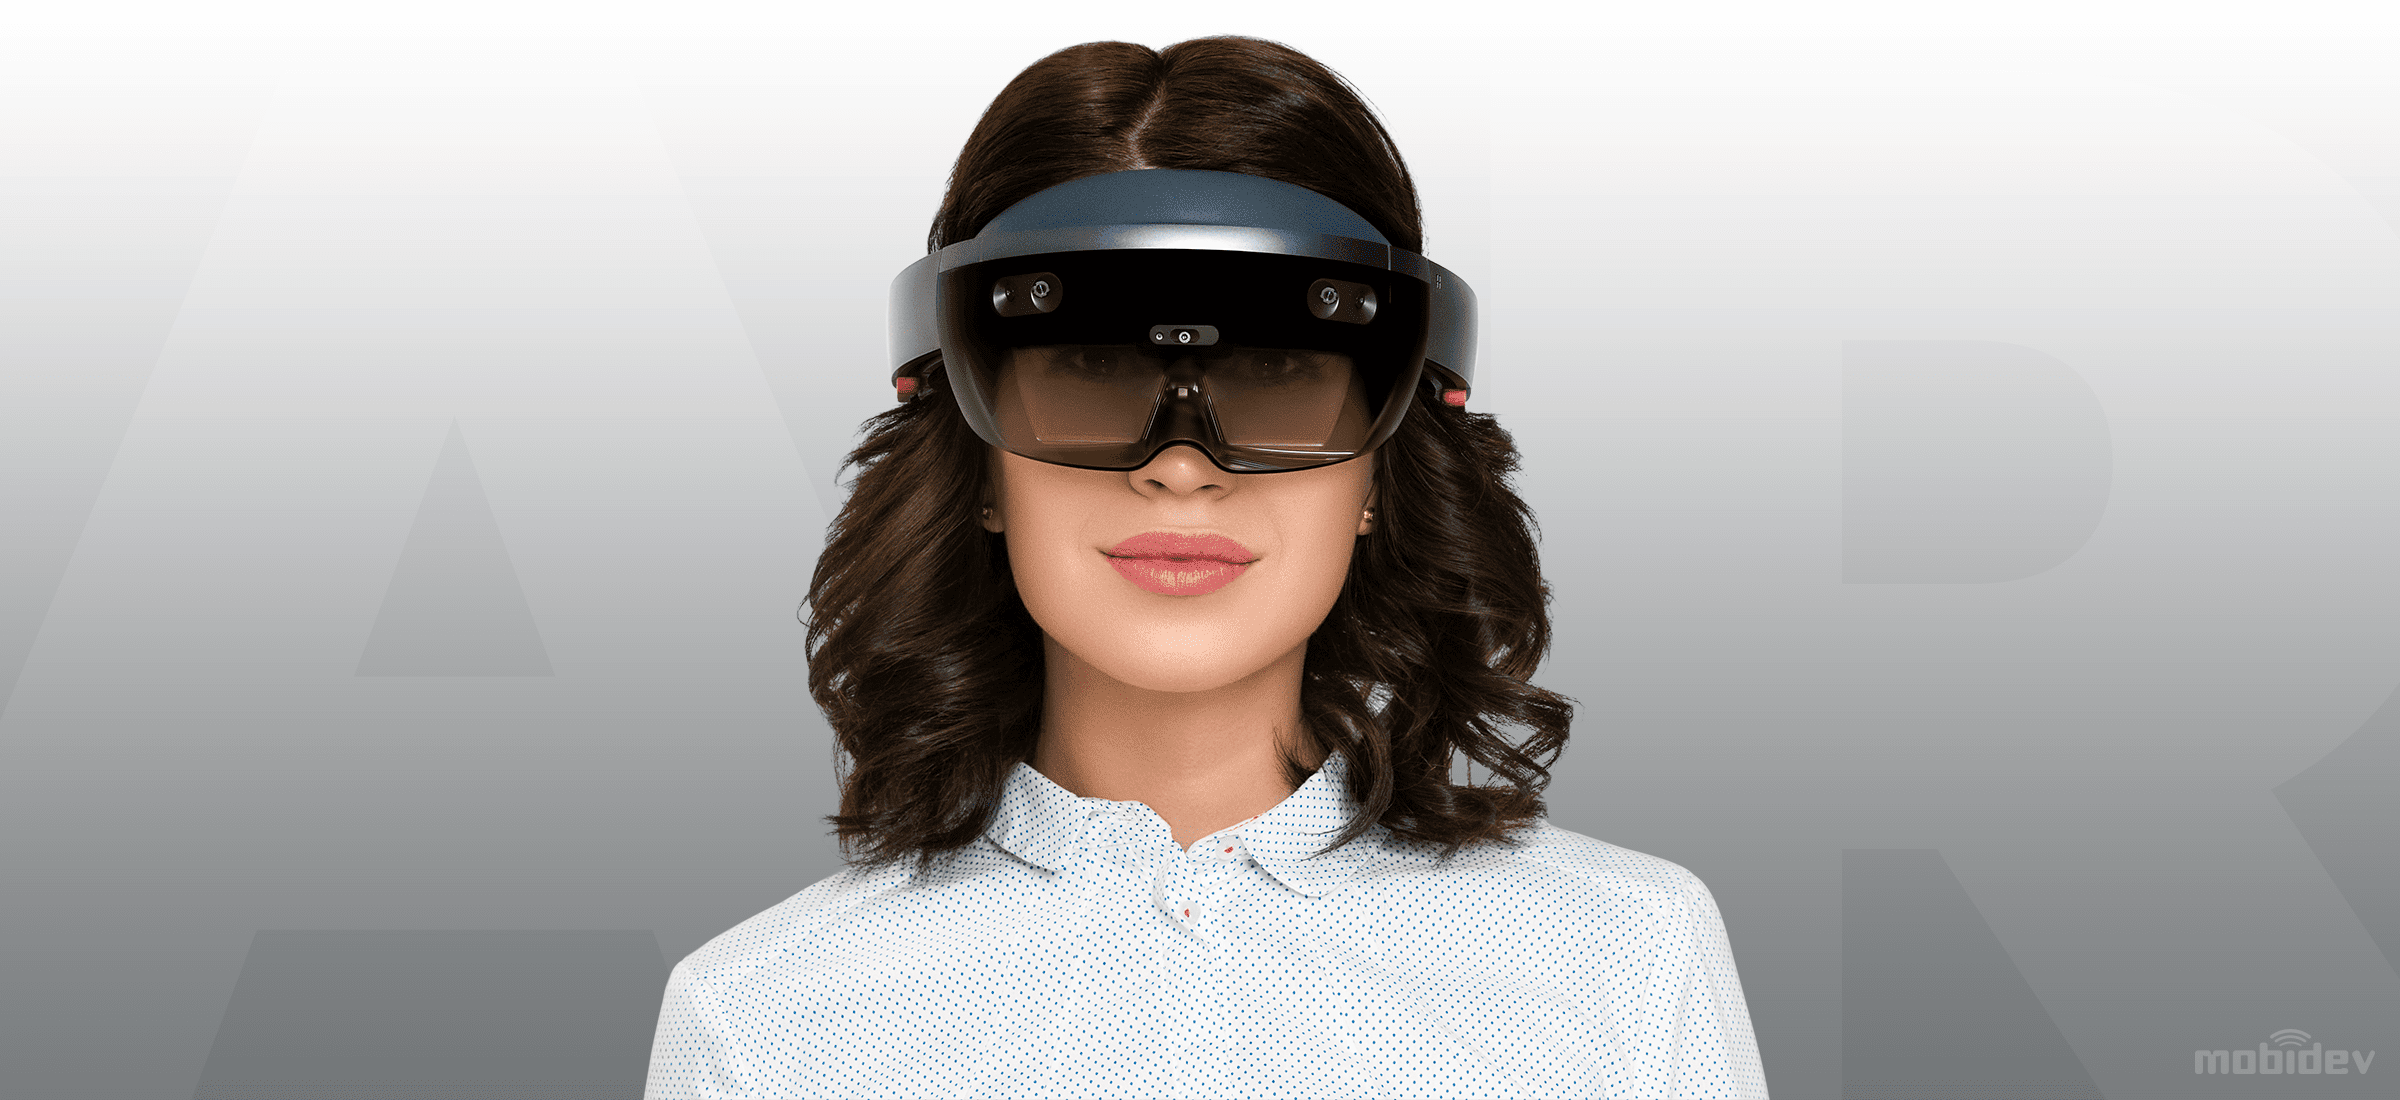 Augmented Reality for Business: Practical Guide